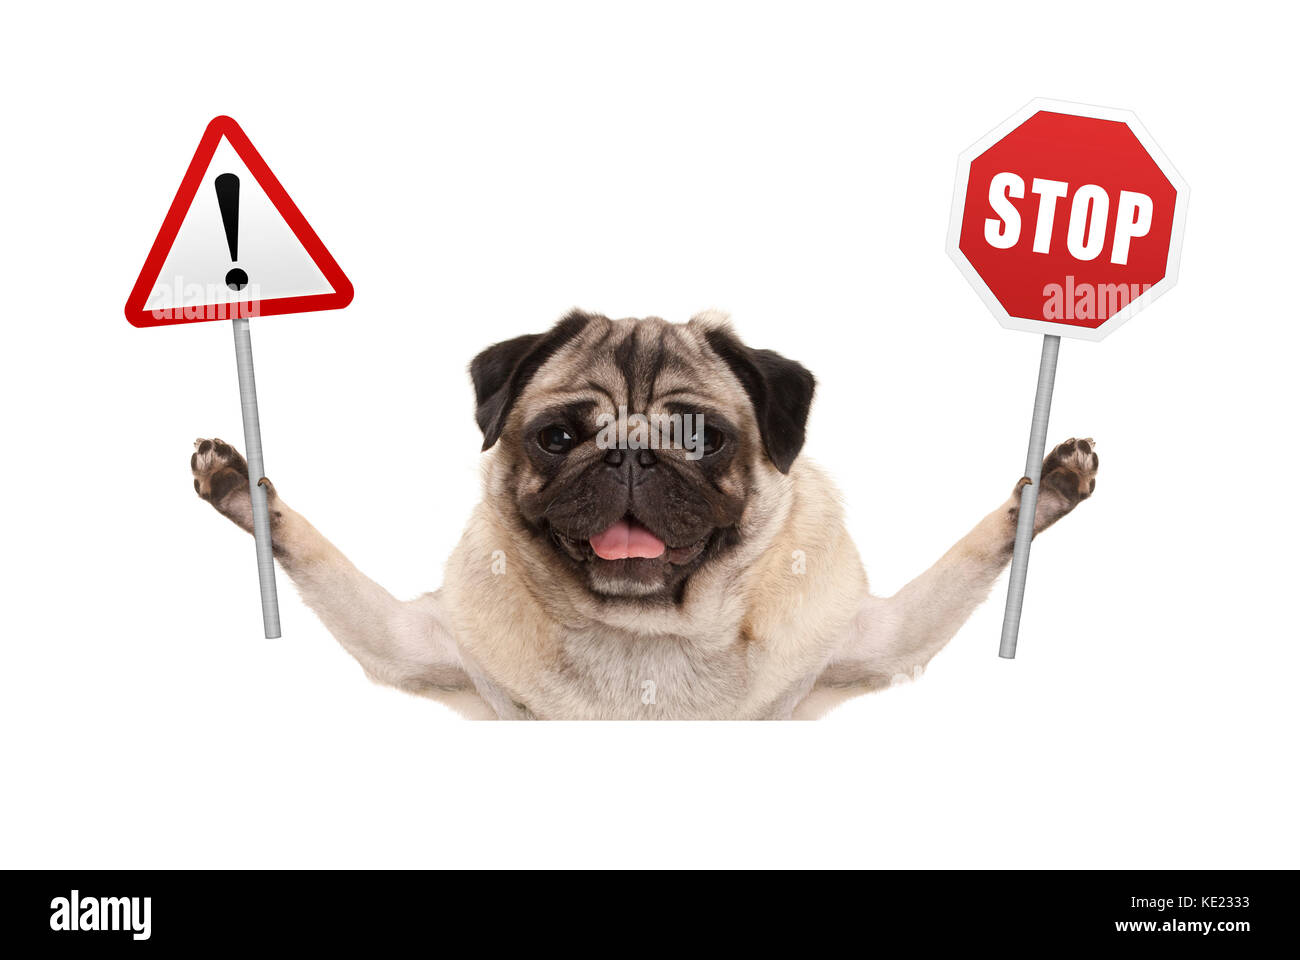 smiling pug dog holding up red stop and exclamation mark sign isolated on white background - Stock Image